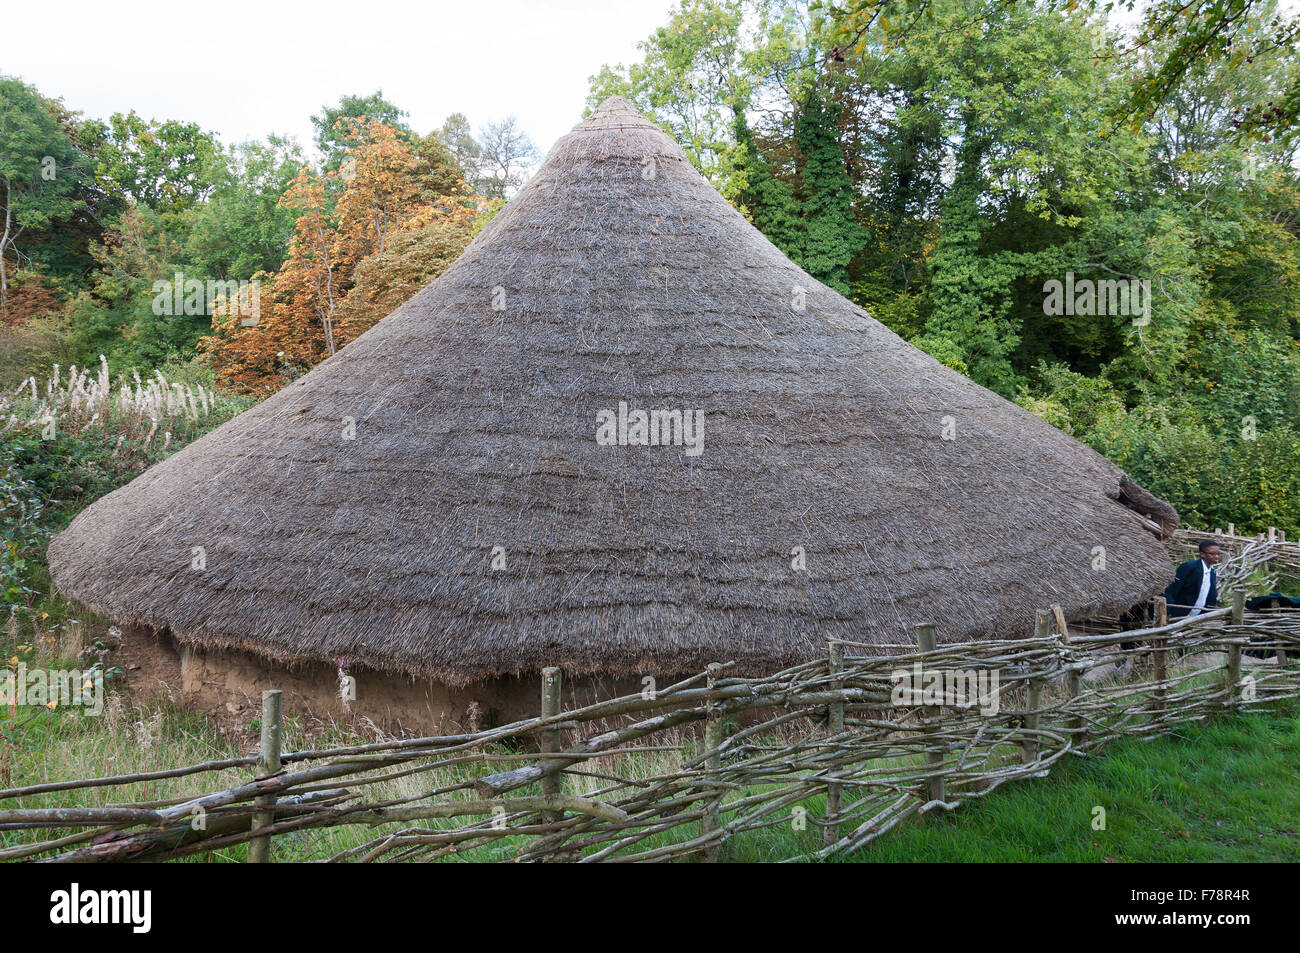 Iron Age House, Chiltern Open Air Museum, Chalfont St Giles Buckinghamshire, England, United Kingdom - Stock Image